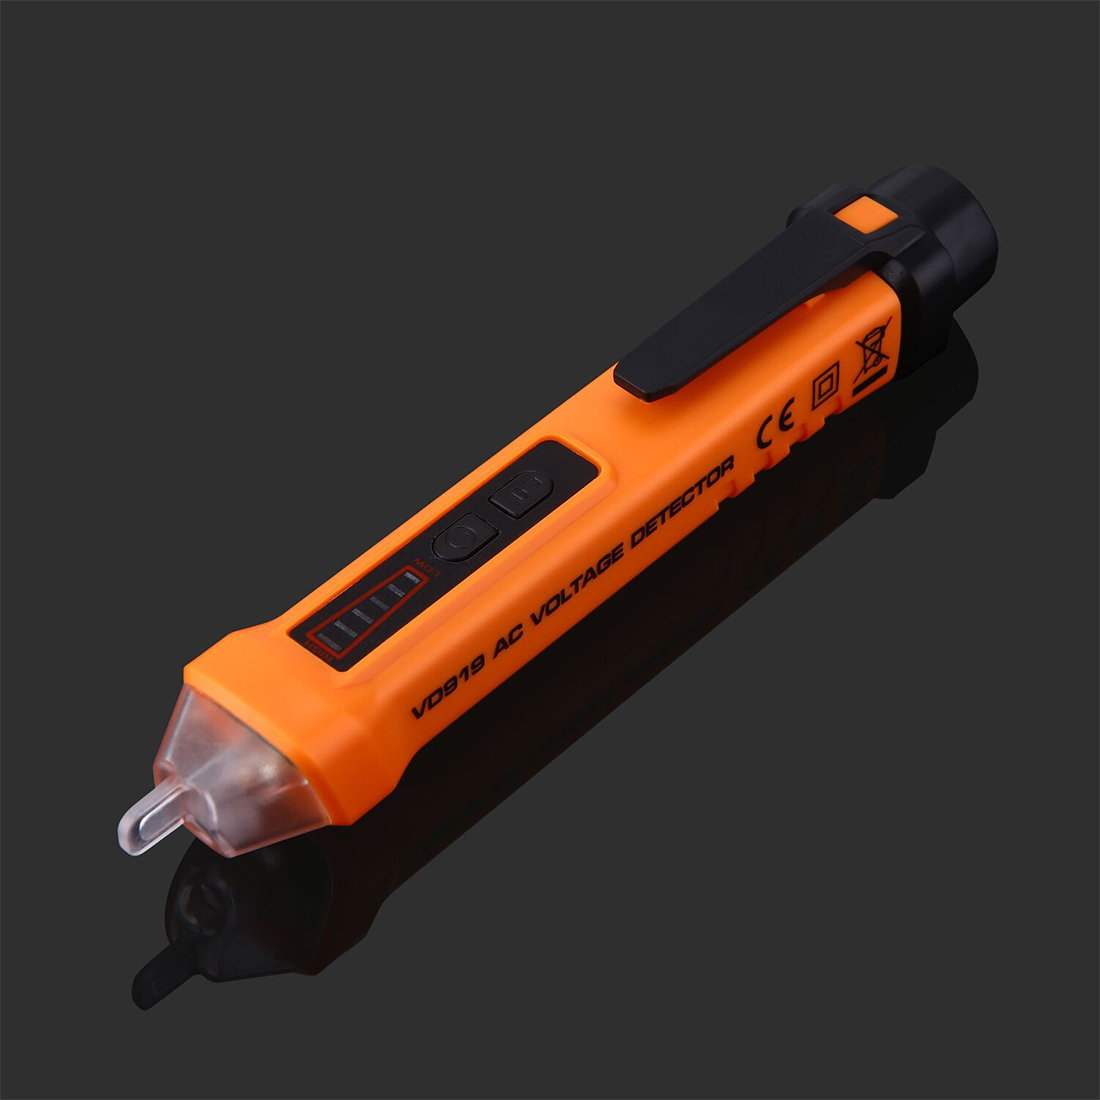 Hot sale PM8908C Non-contact AC Voltage Detector Tester Meter 12V-1000V Pen style Voltage Detector 2016 newest hot digital lcd vibration meter tester vibrometer bearing condition detector hot sale